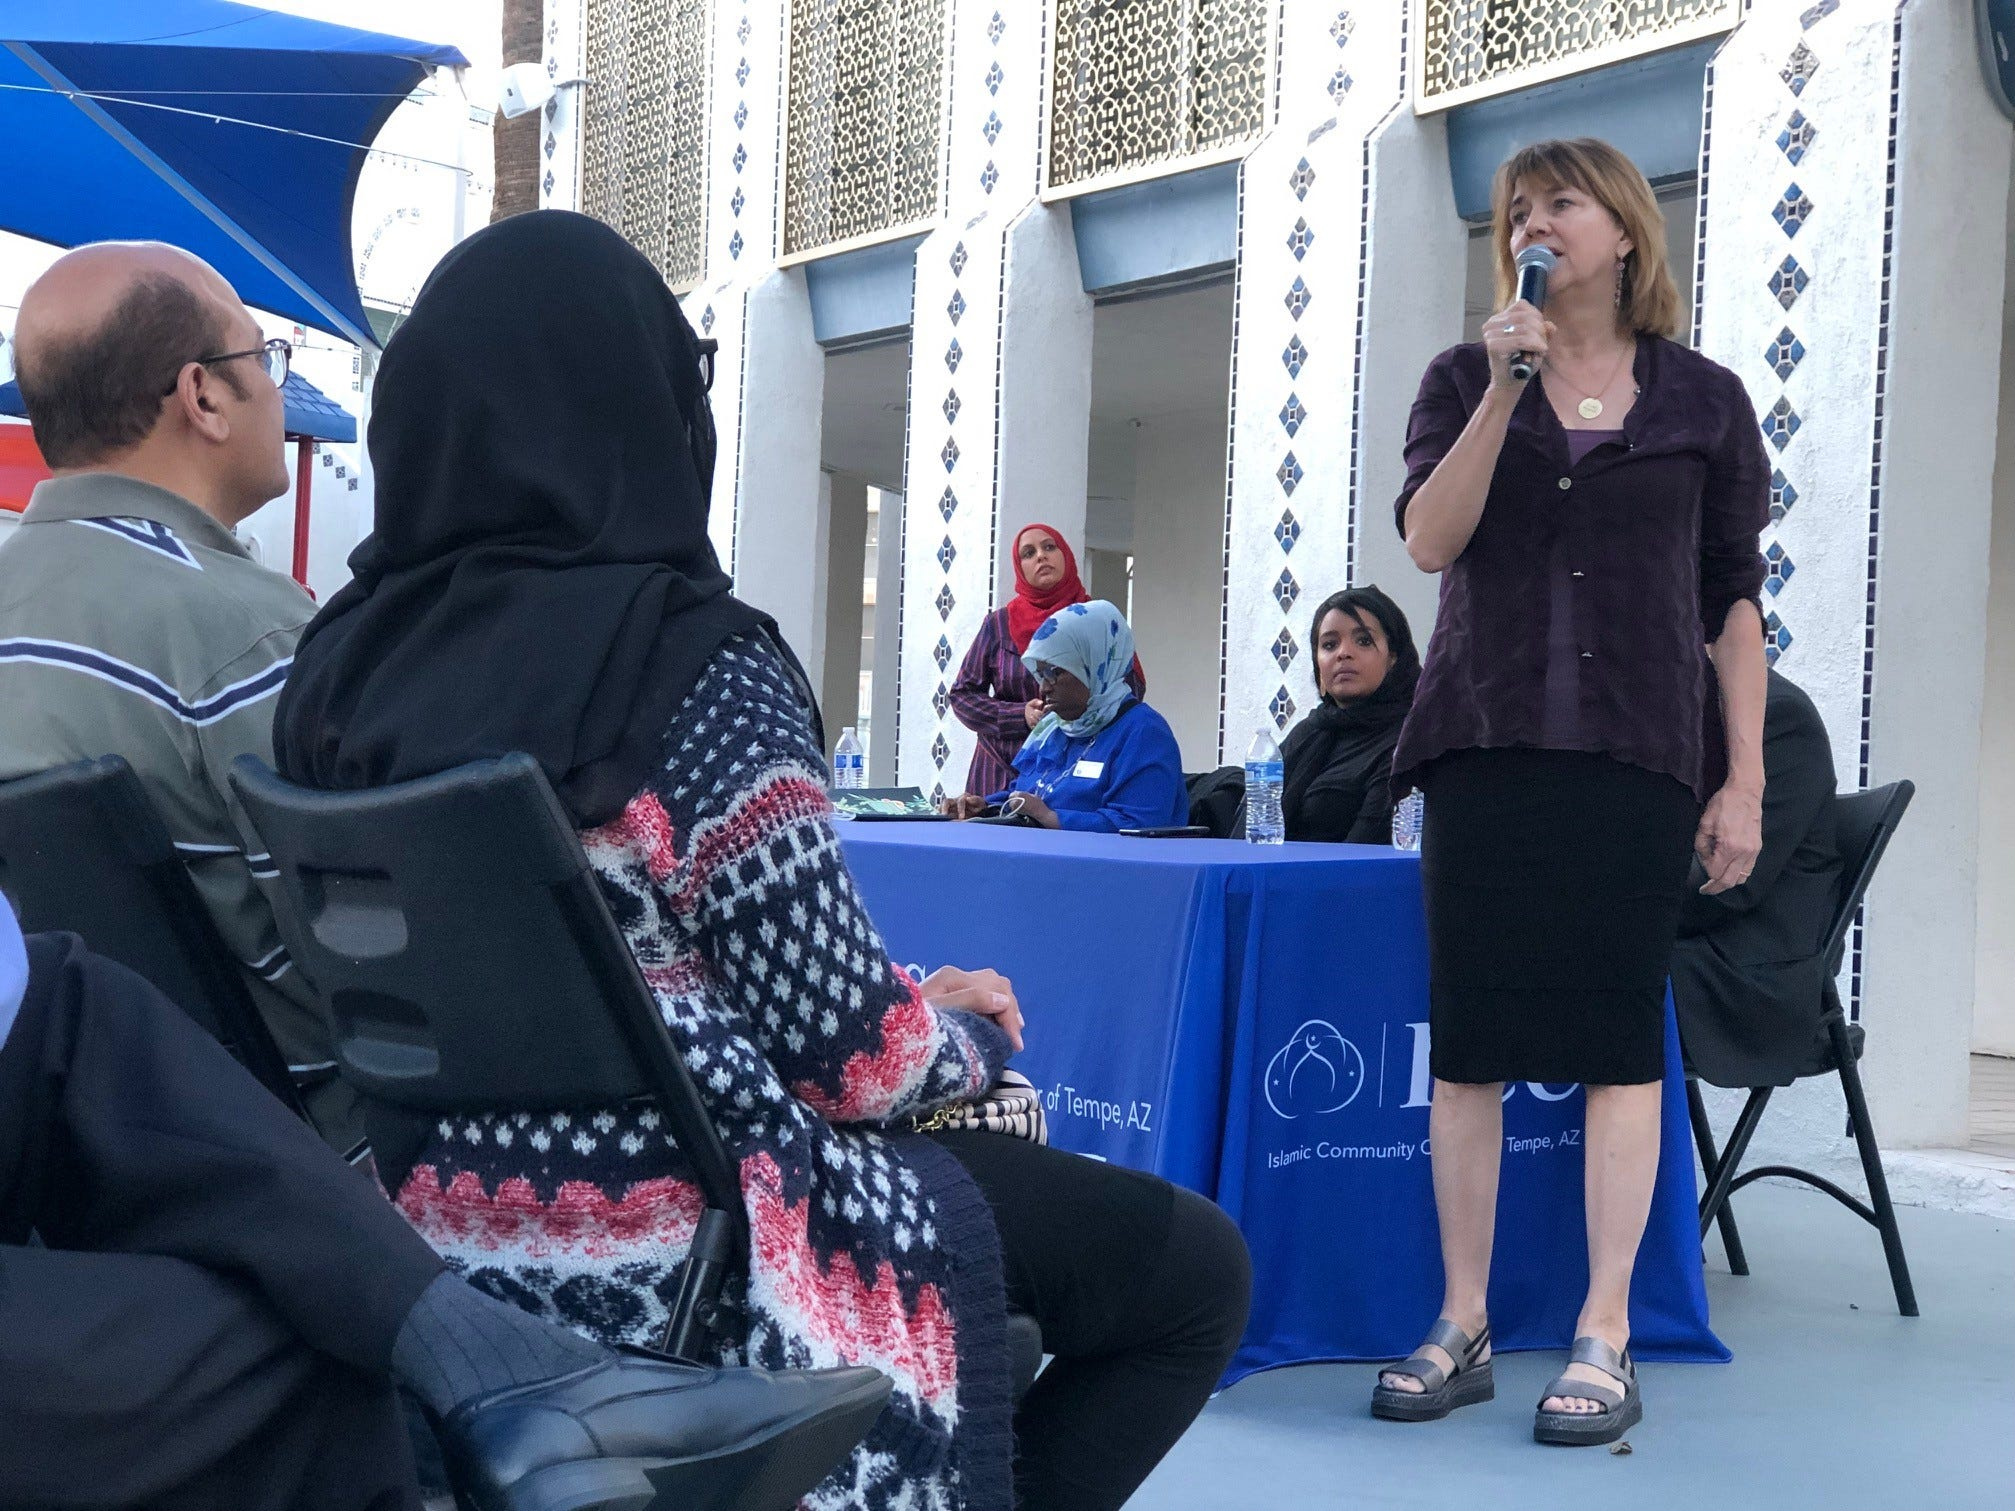 Tempe Vice Mayor Lauren Kuby speaks at a vigil on Saturday evening at the Islamic Community Center of Tempe to remember the victims of the New Zealand terror attack.